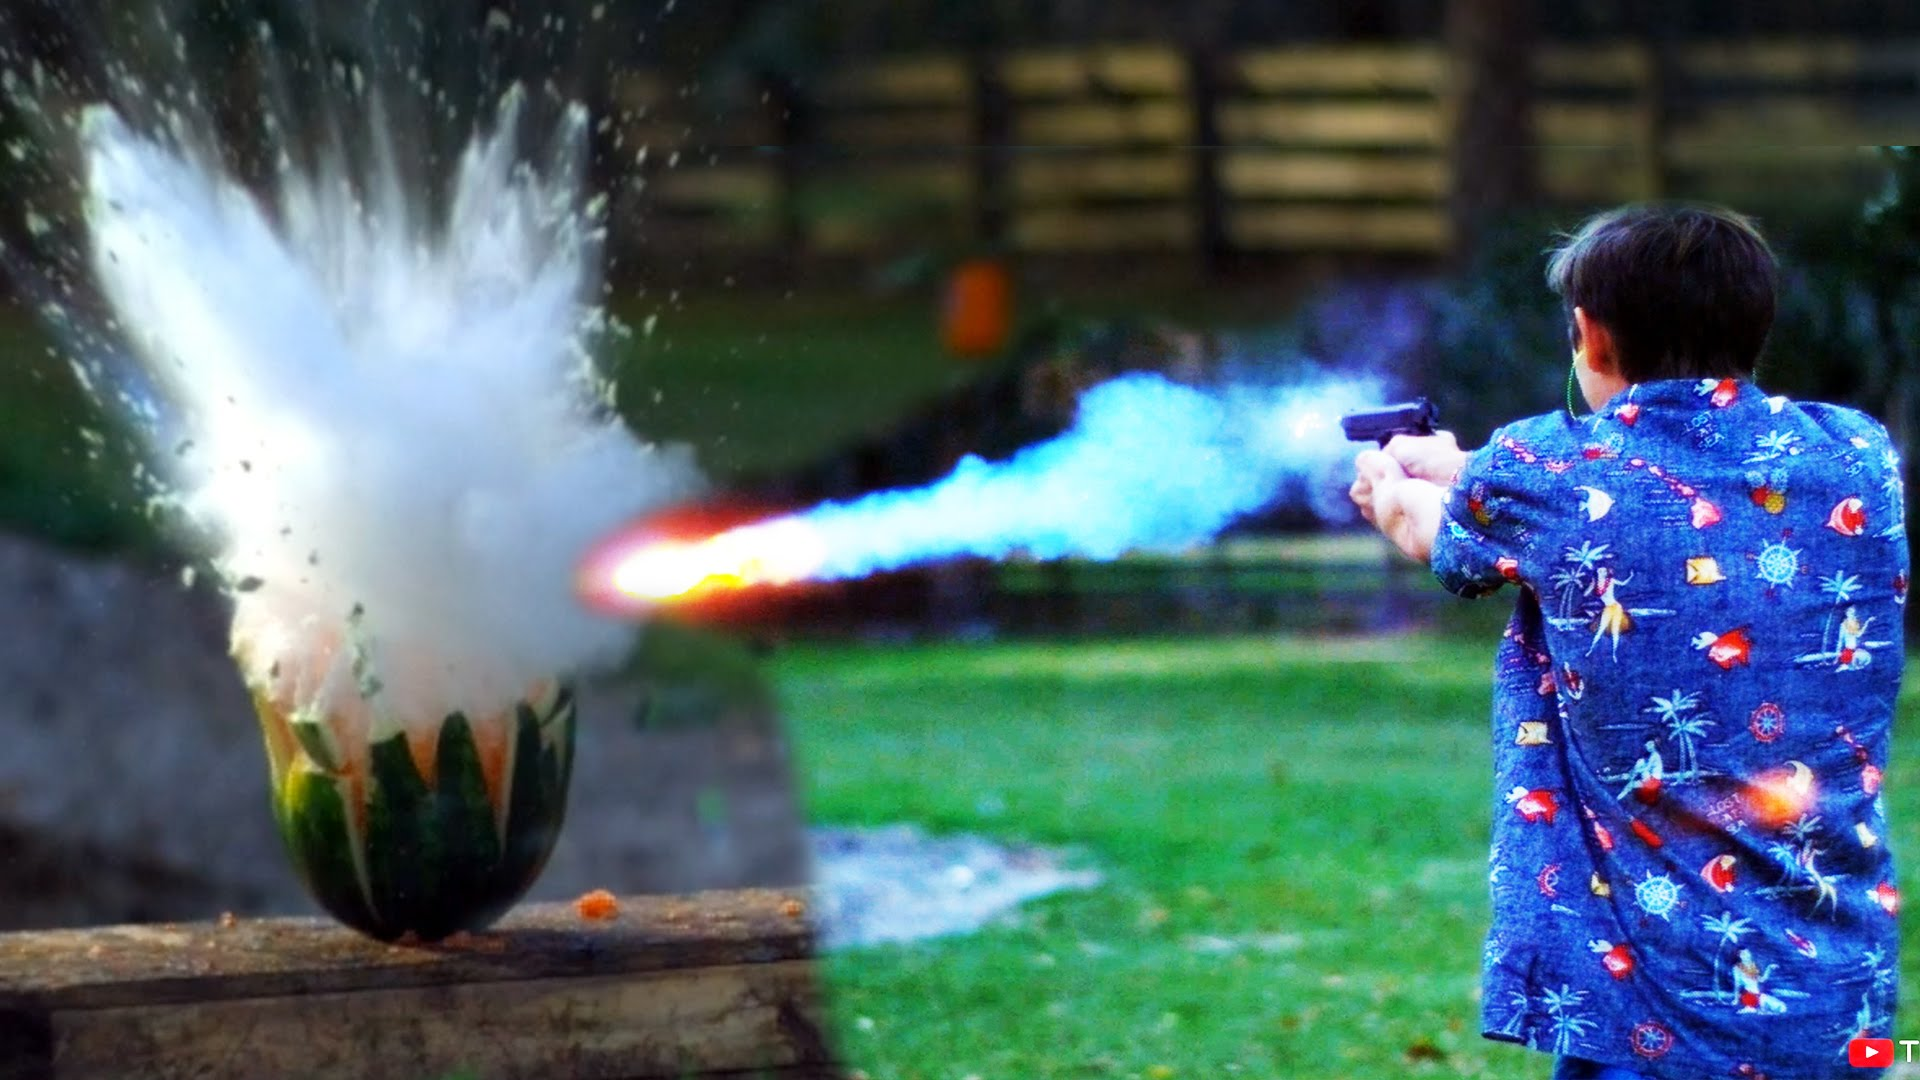 The Backyard Scientist Fires Liquid Sodium Filled Bullets